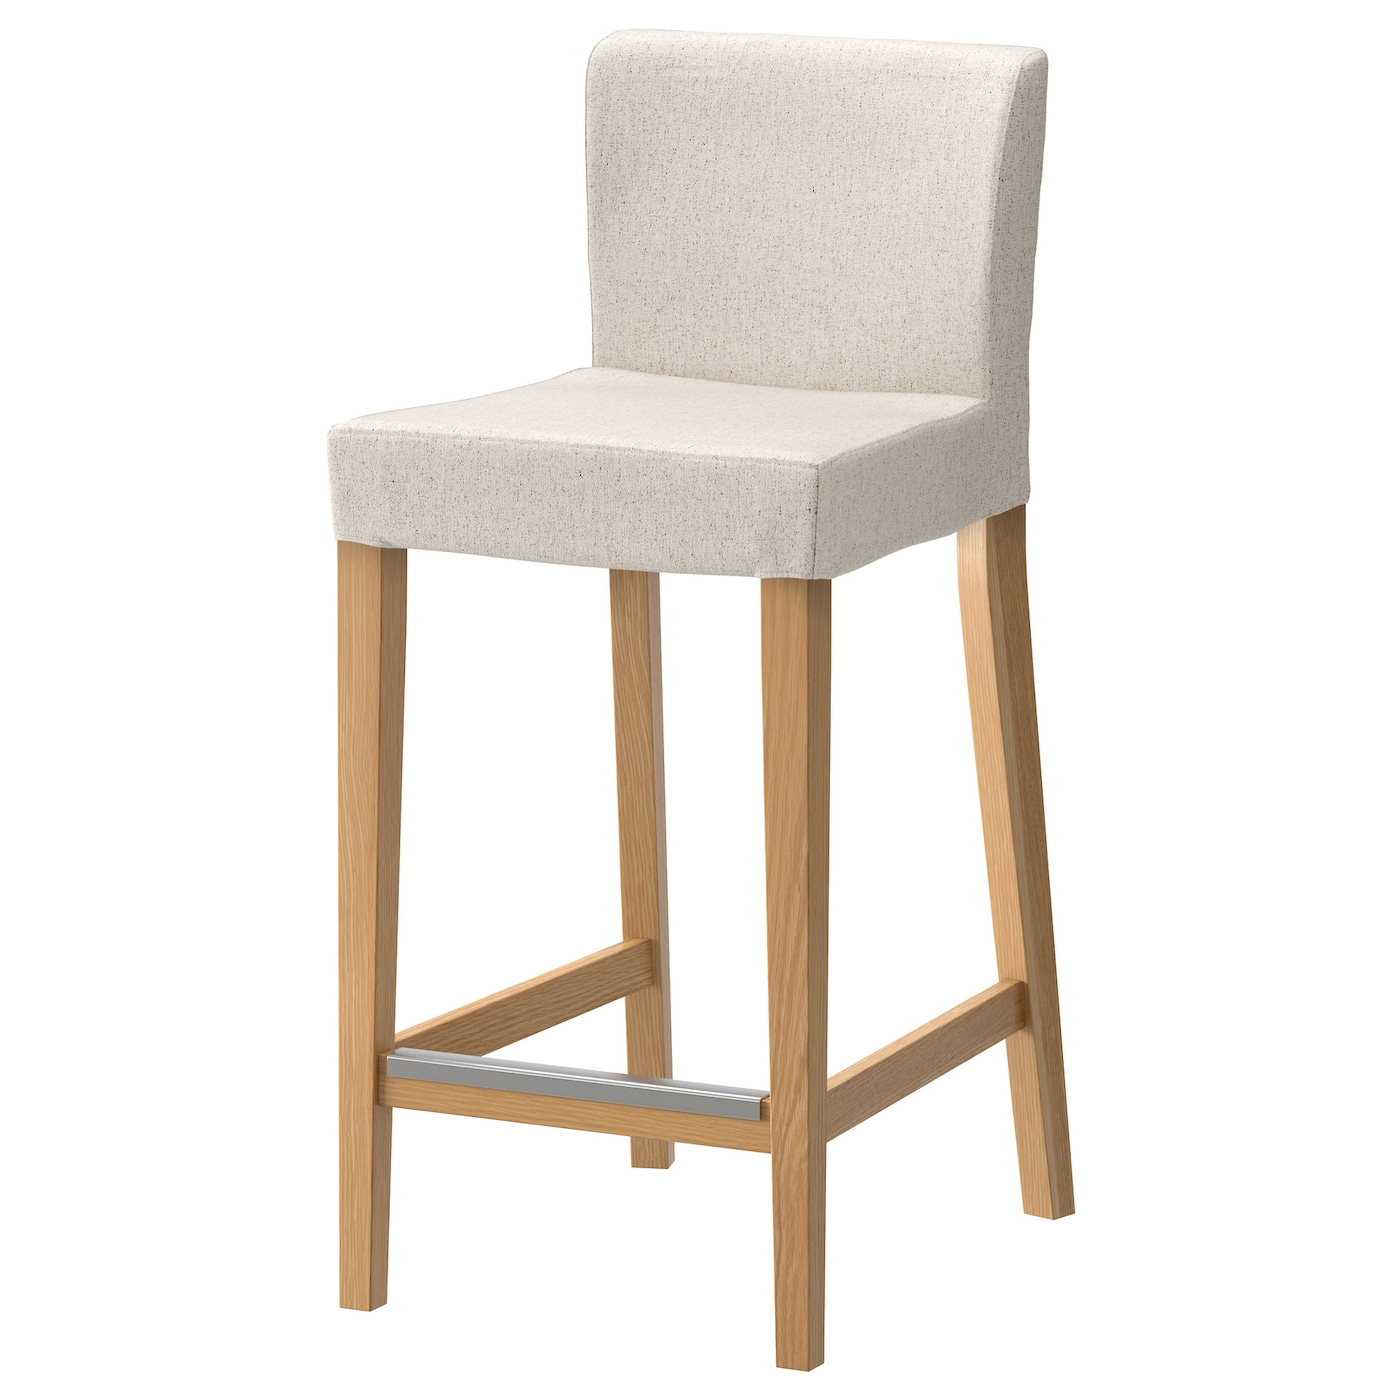 henriksdal bar stool with backrest oak linneryd natural 63 cm ikea. Black Bedroom Furniture Sets. Home Design Ideas